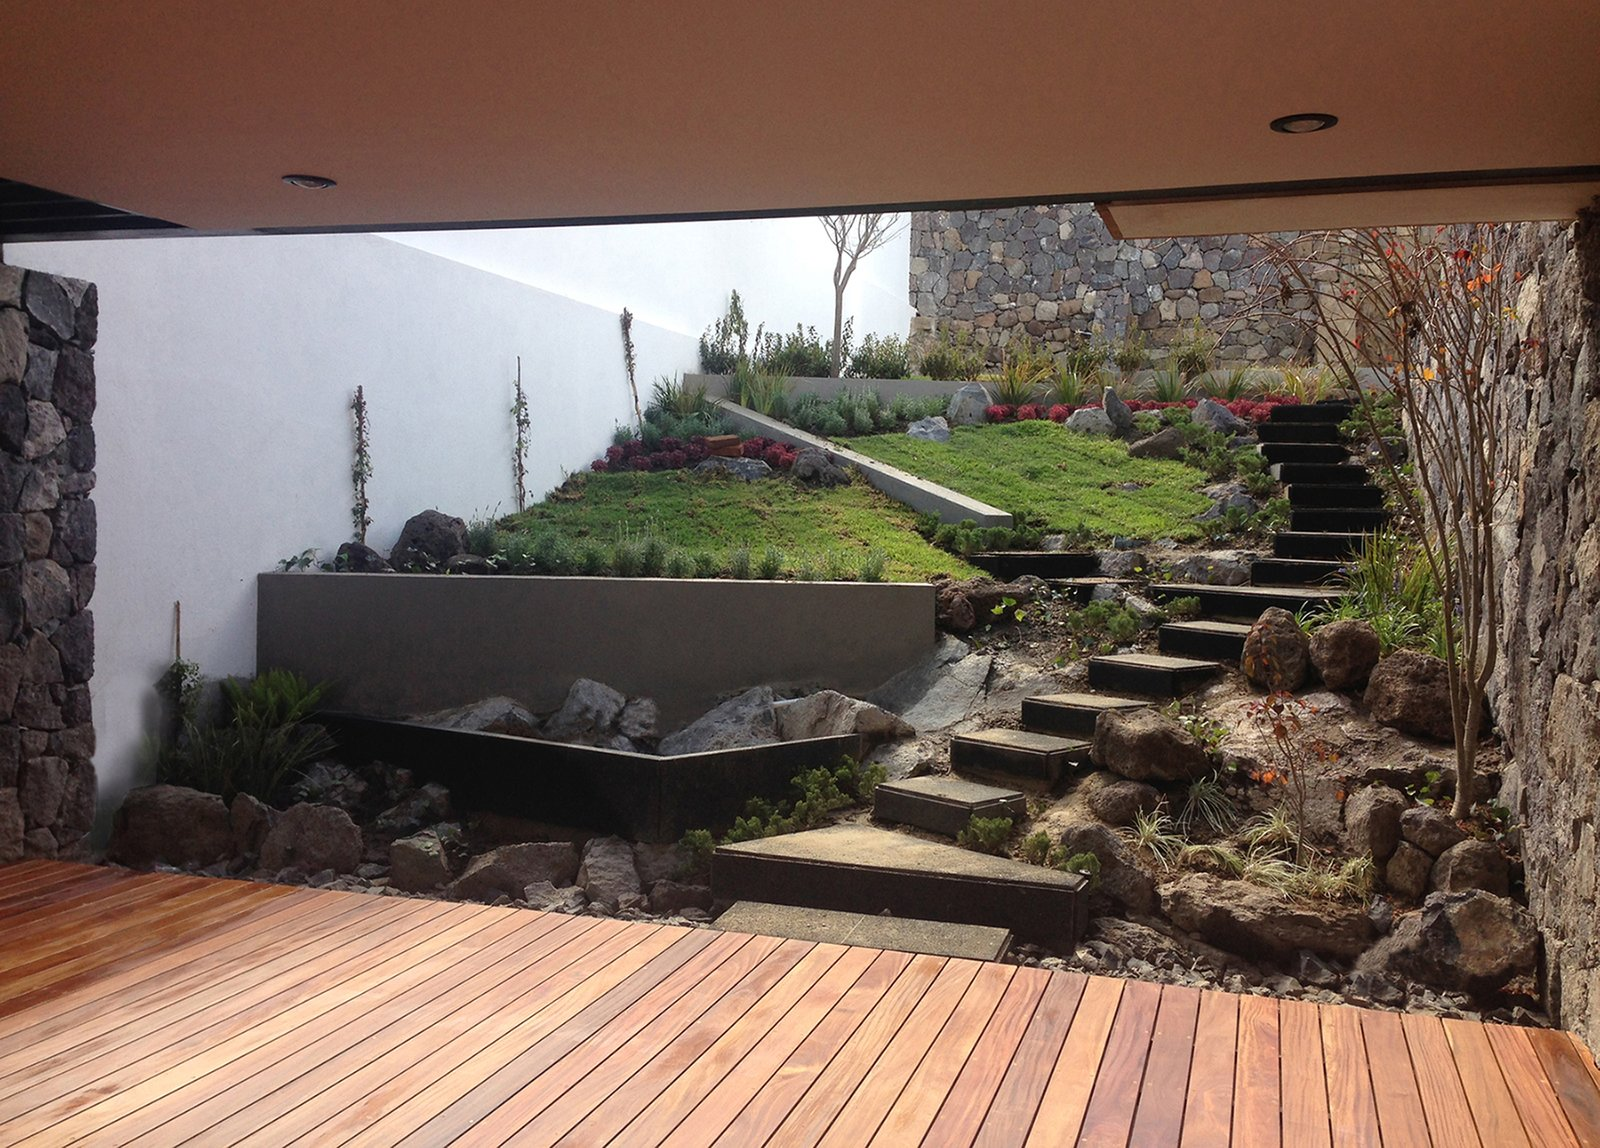 Terrace Tagged: Outdoor, Stone Patio, Porch, Deck, Wood Patio, Porch, Deck, Large Patio, Porch, Deck, Decking Patio, Porch, Deck, Garden, Hardscapes, Flowers, and Gardens.  Casa AB by e|arquitectos